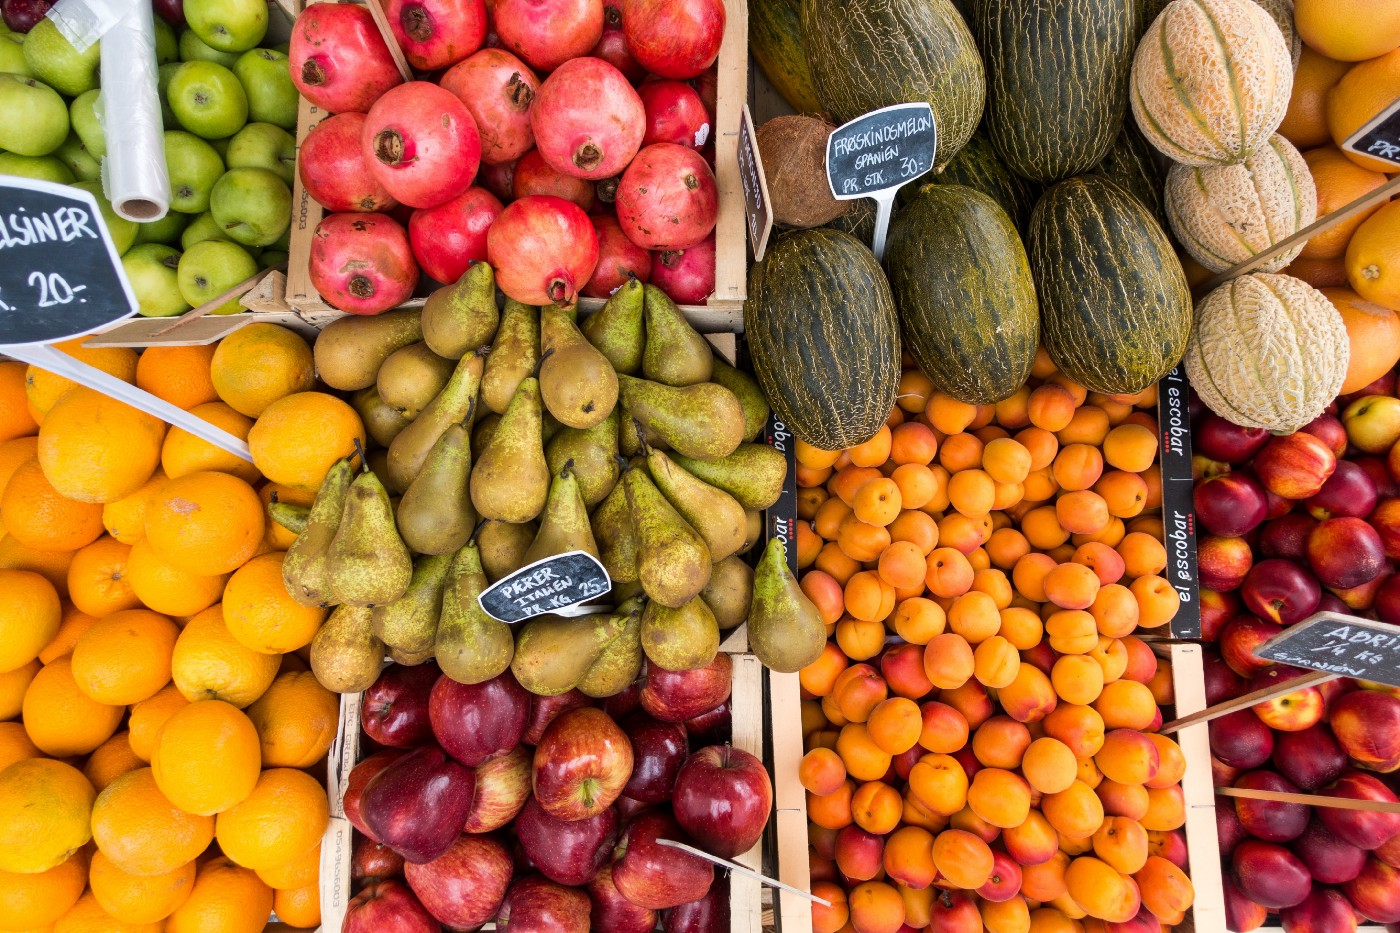 Picture of various fruits in bins at a market: apples, oranges, pomegranates, etc.